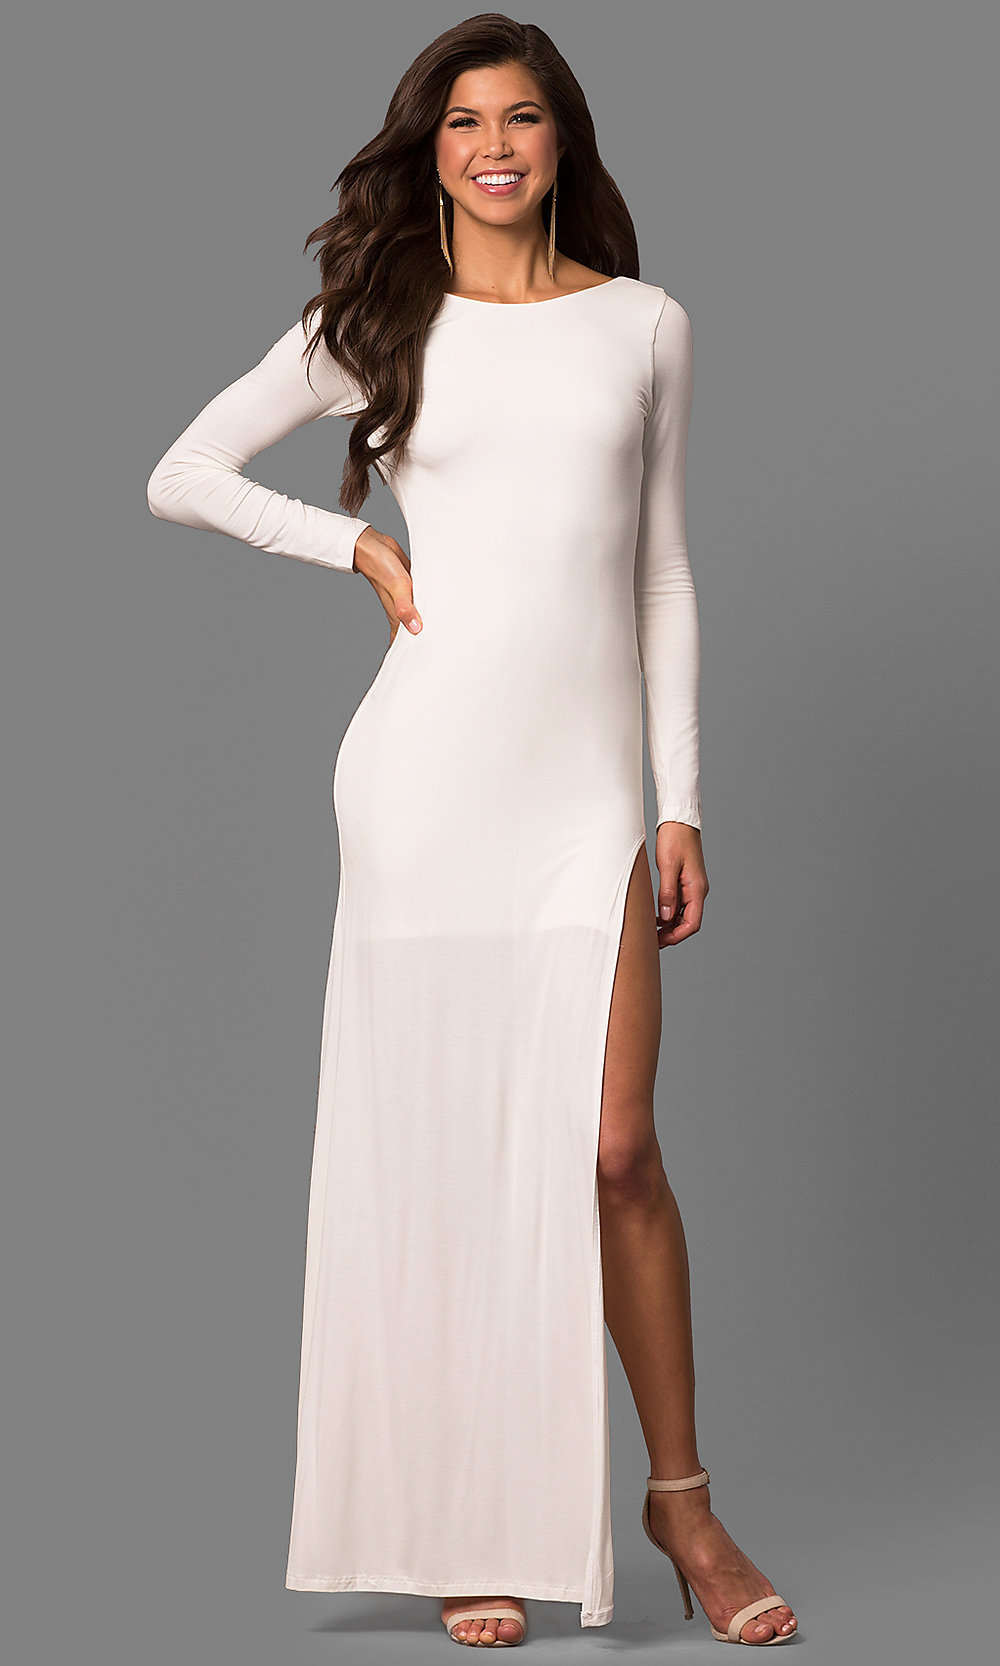 Find great deals on eBay for Long Sleeve Open Back Dress in Elegant Dresses for Women. Shop with confidence.